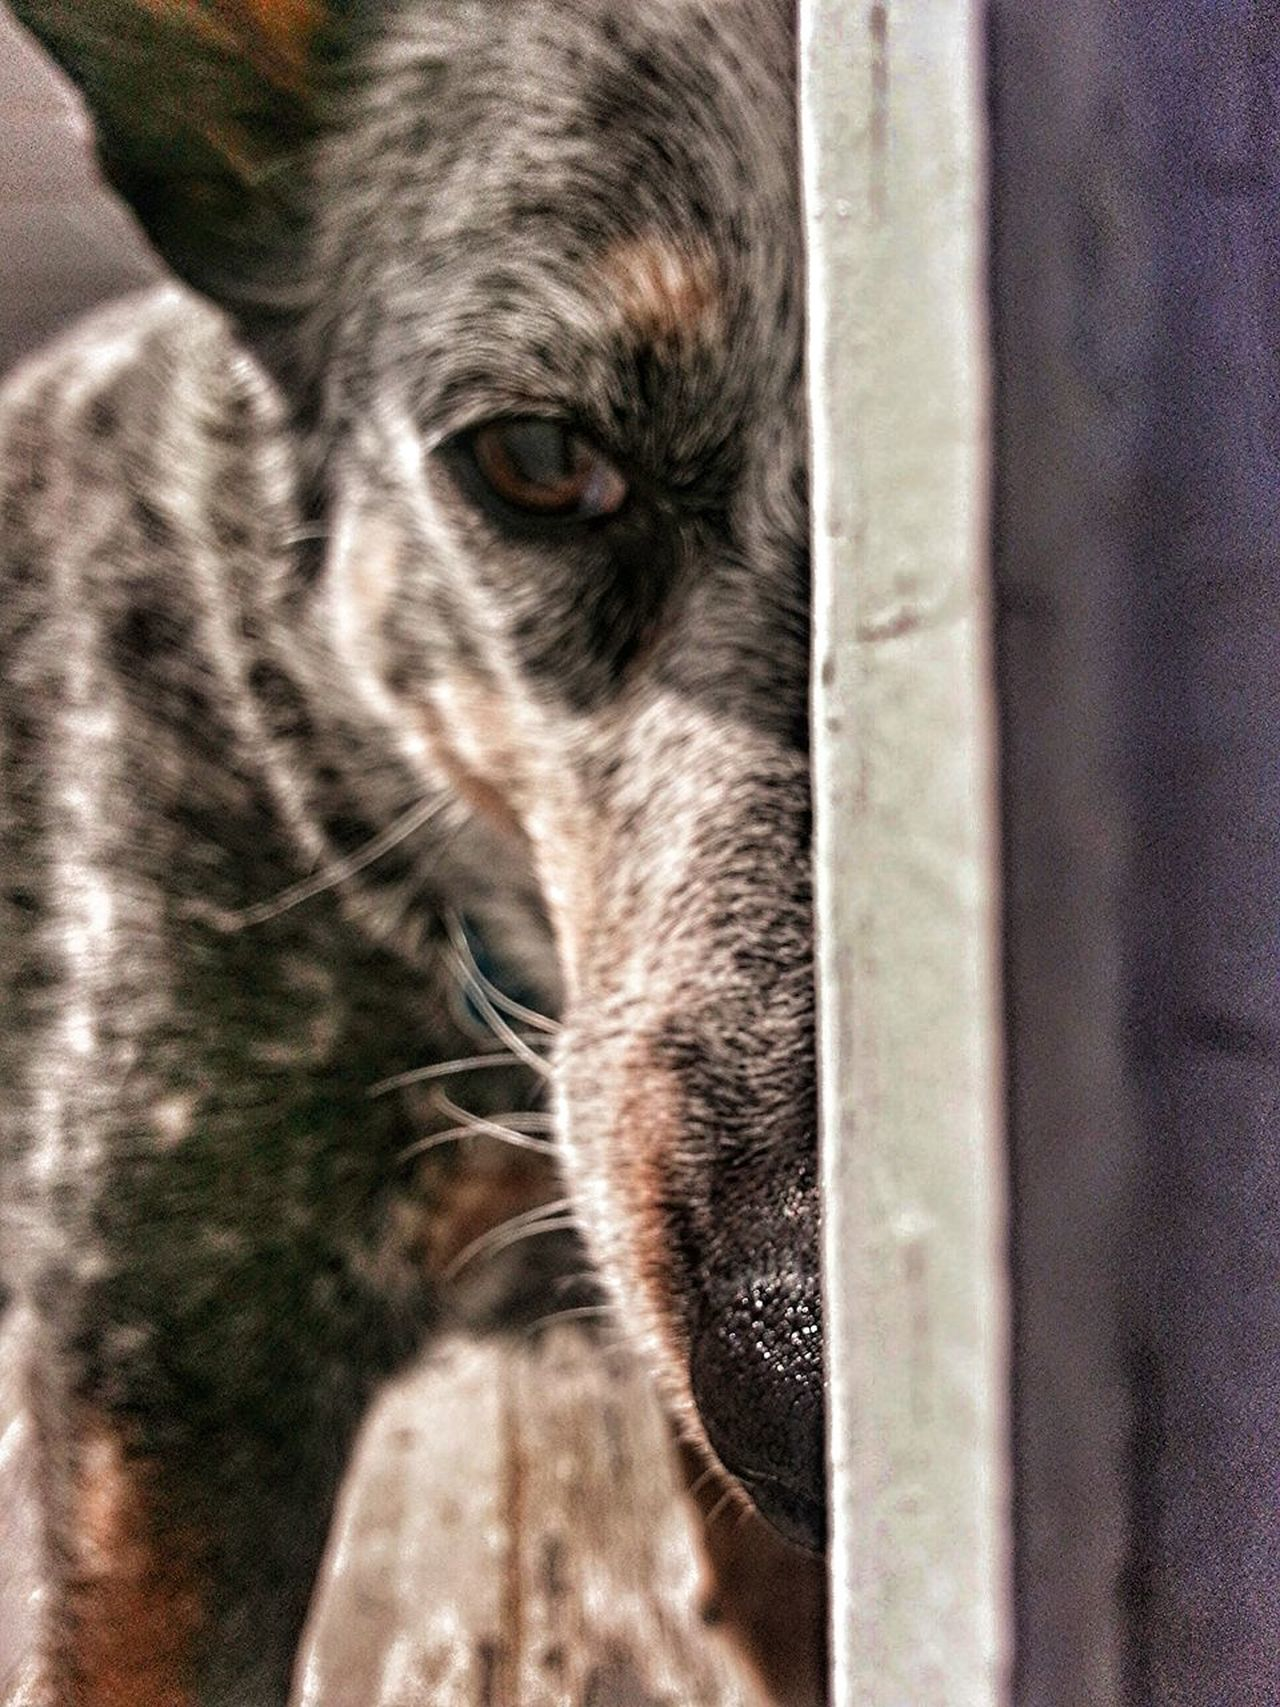 One Animal Pets Domestic Animals Close-up Dog Portrait Mammal Blue Heeler Australian Cattle Dog Emotional Hide And Seek Peekaboo